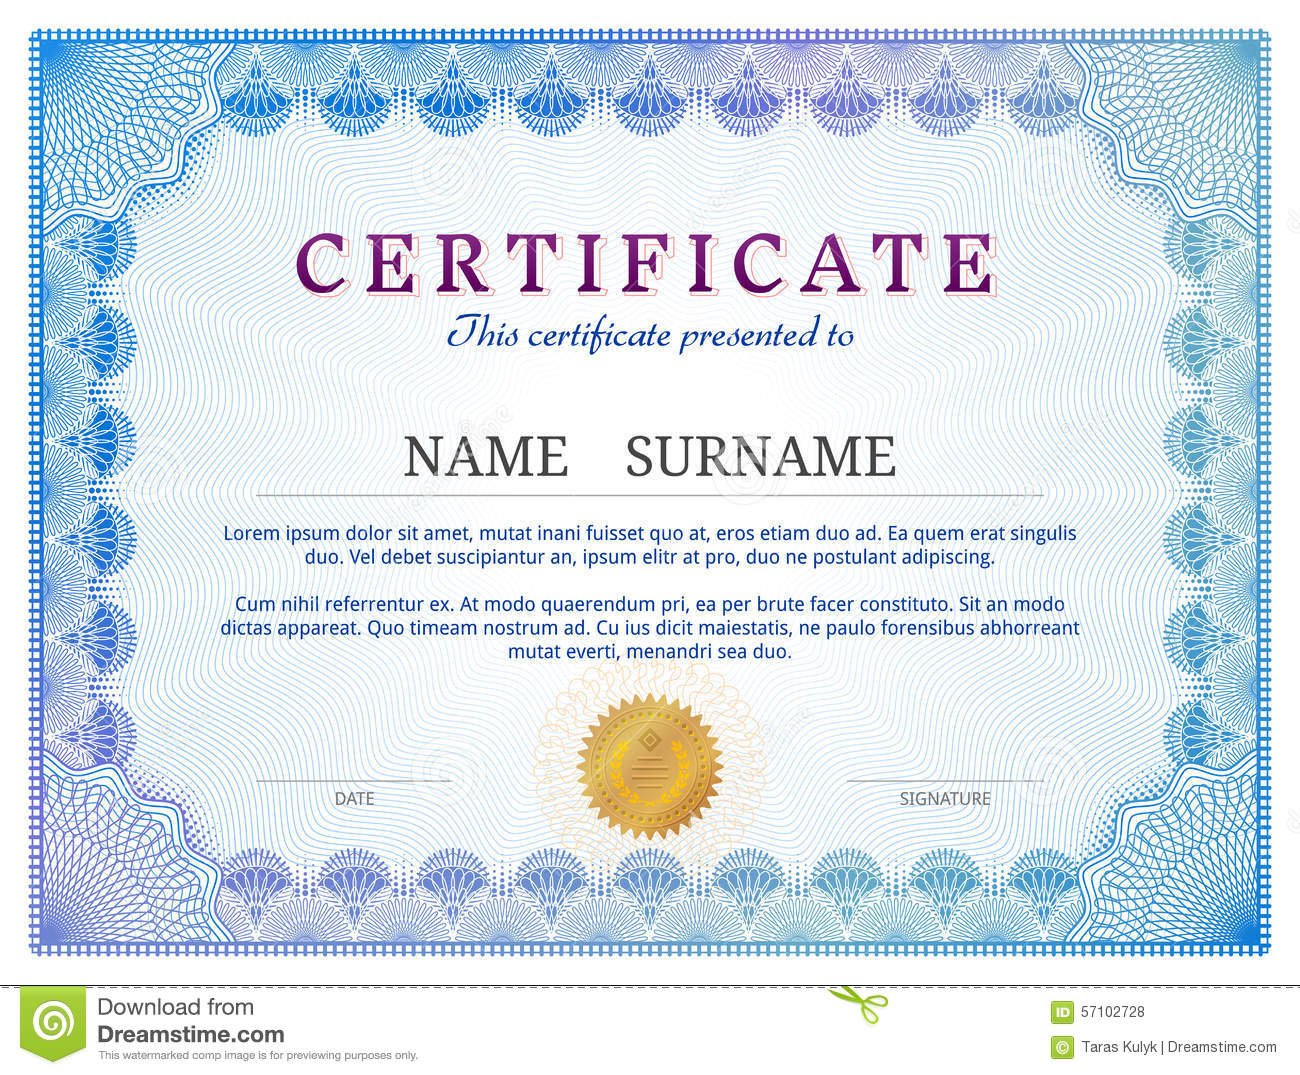 Certificate Template With Guilloche Elements Stock Vector Within Validation Certificate Template